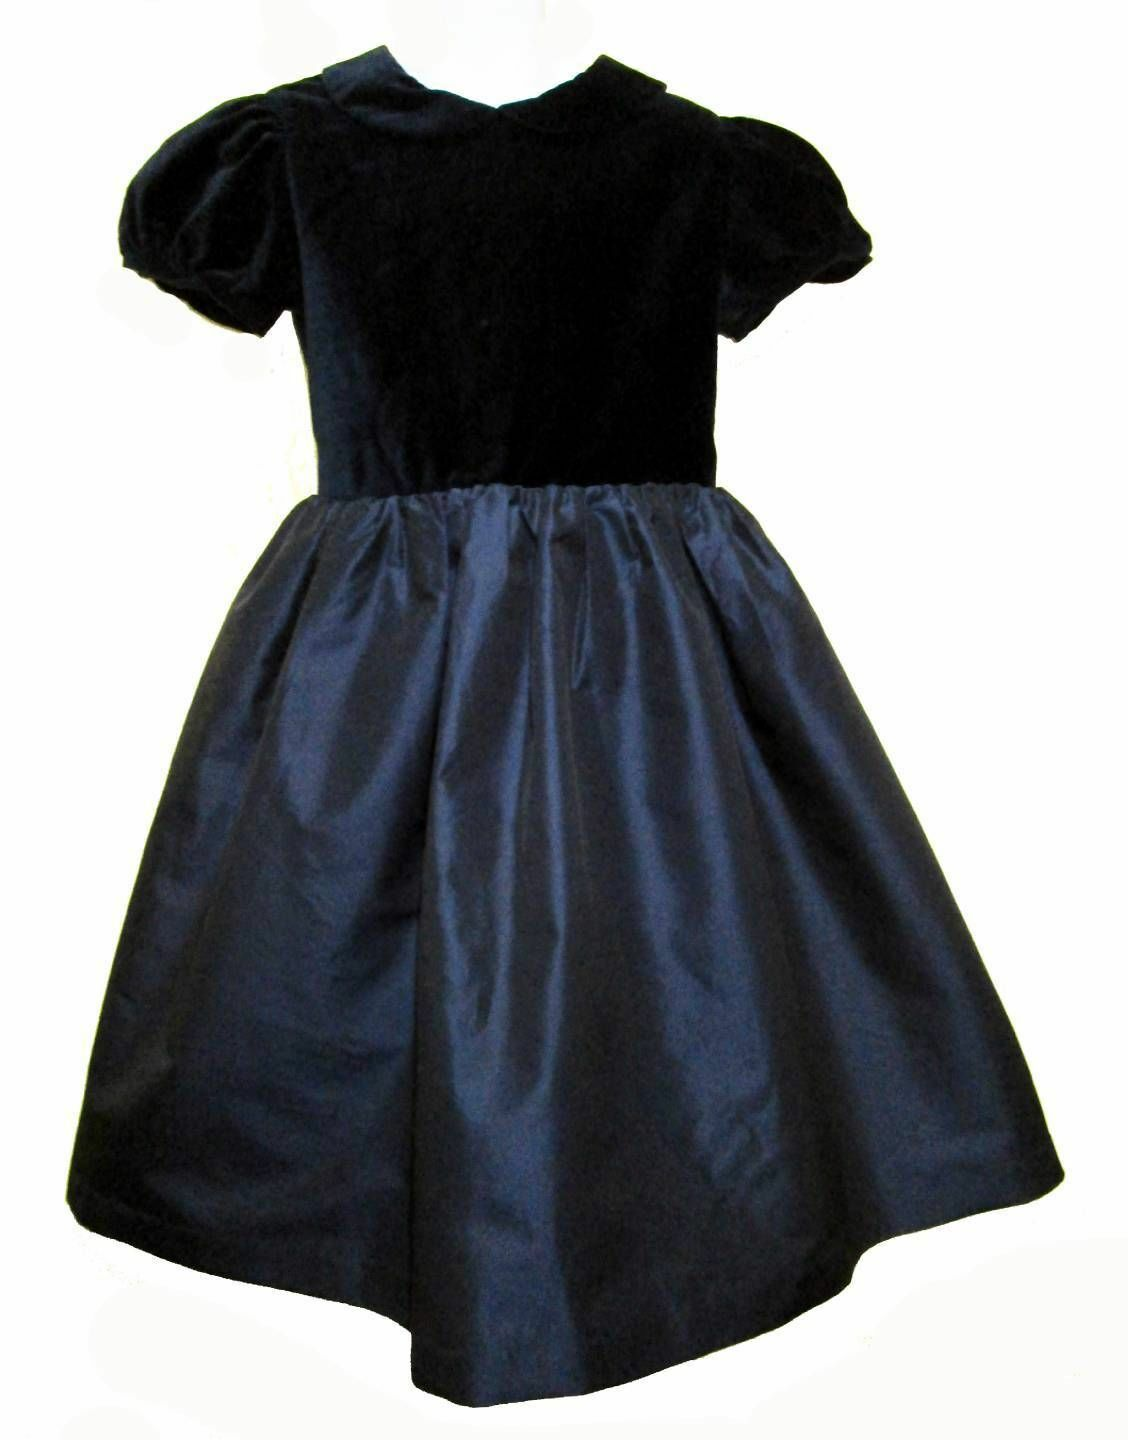 You searched for: size 10 dress! Etsy is the home to thousands of handmade, vintage, and one-of-a-kind products and gifts related to your search. No matter what you're looking for or where you are in the world, our global marketplace of sellers can help you find unique and affordable options. Let's get started!